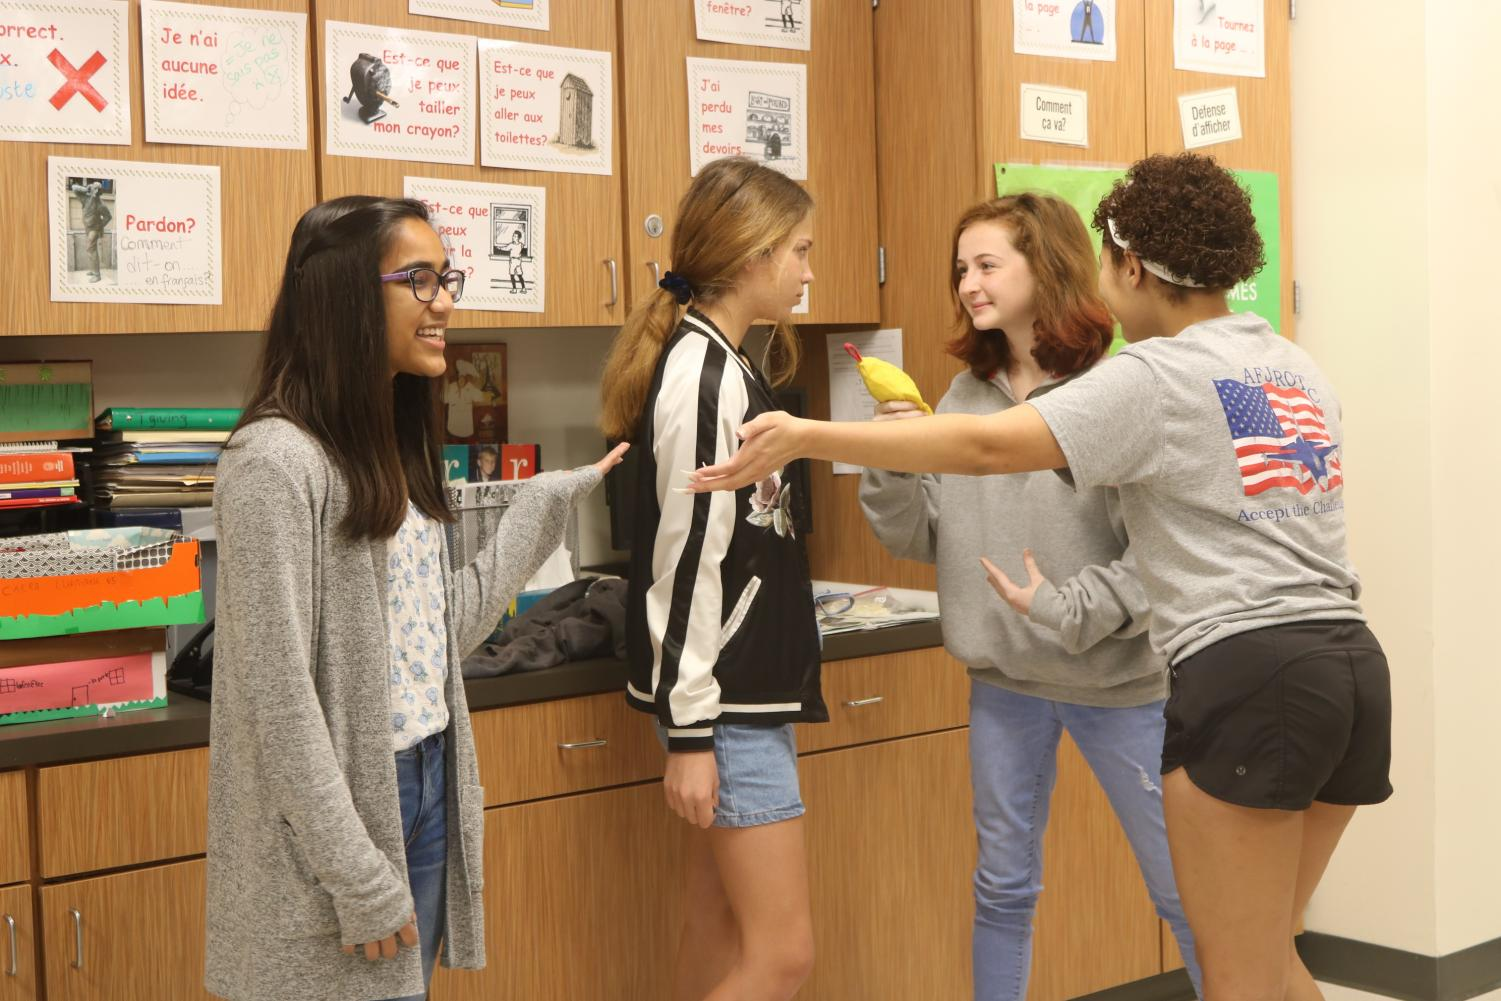 French+students+perform+a+skit+that+represents+a+commercial+for+lipstick.